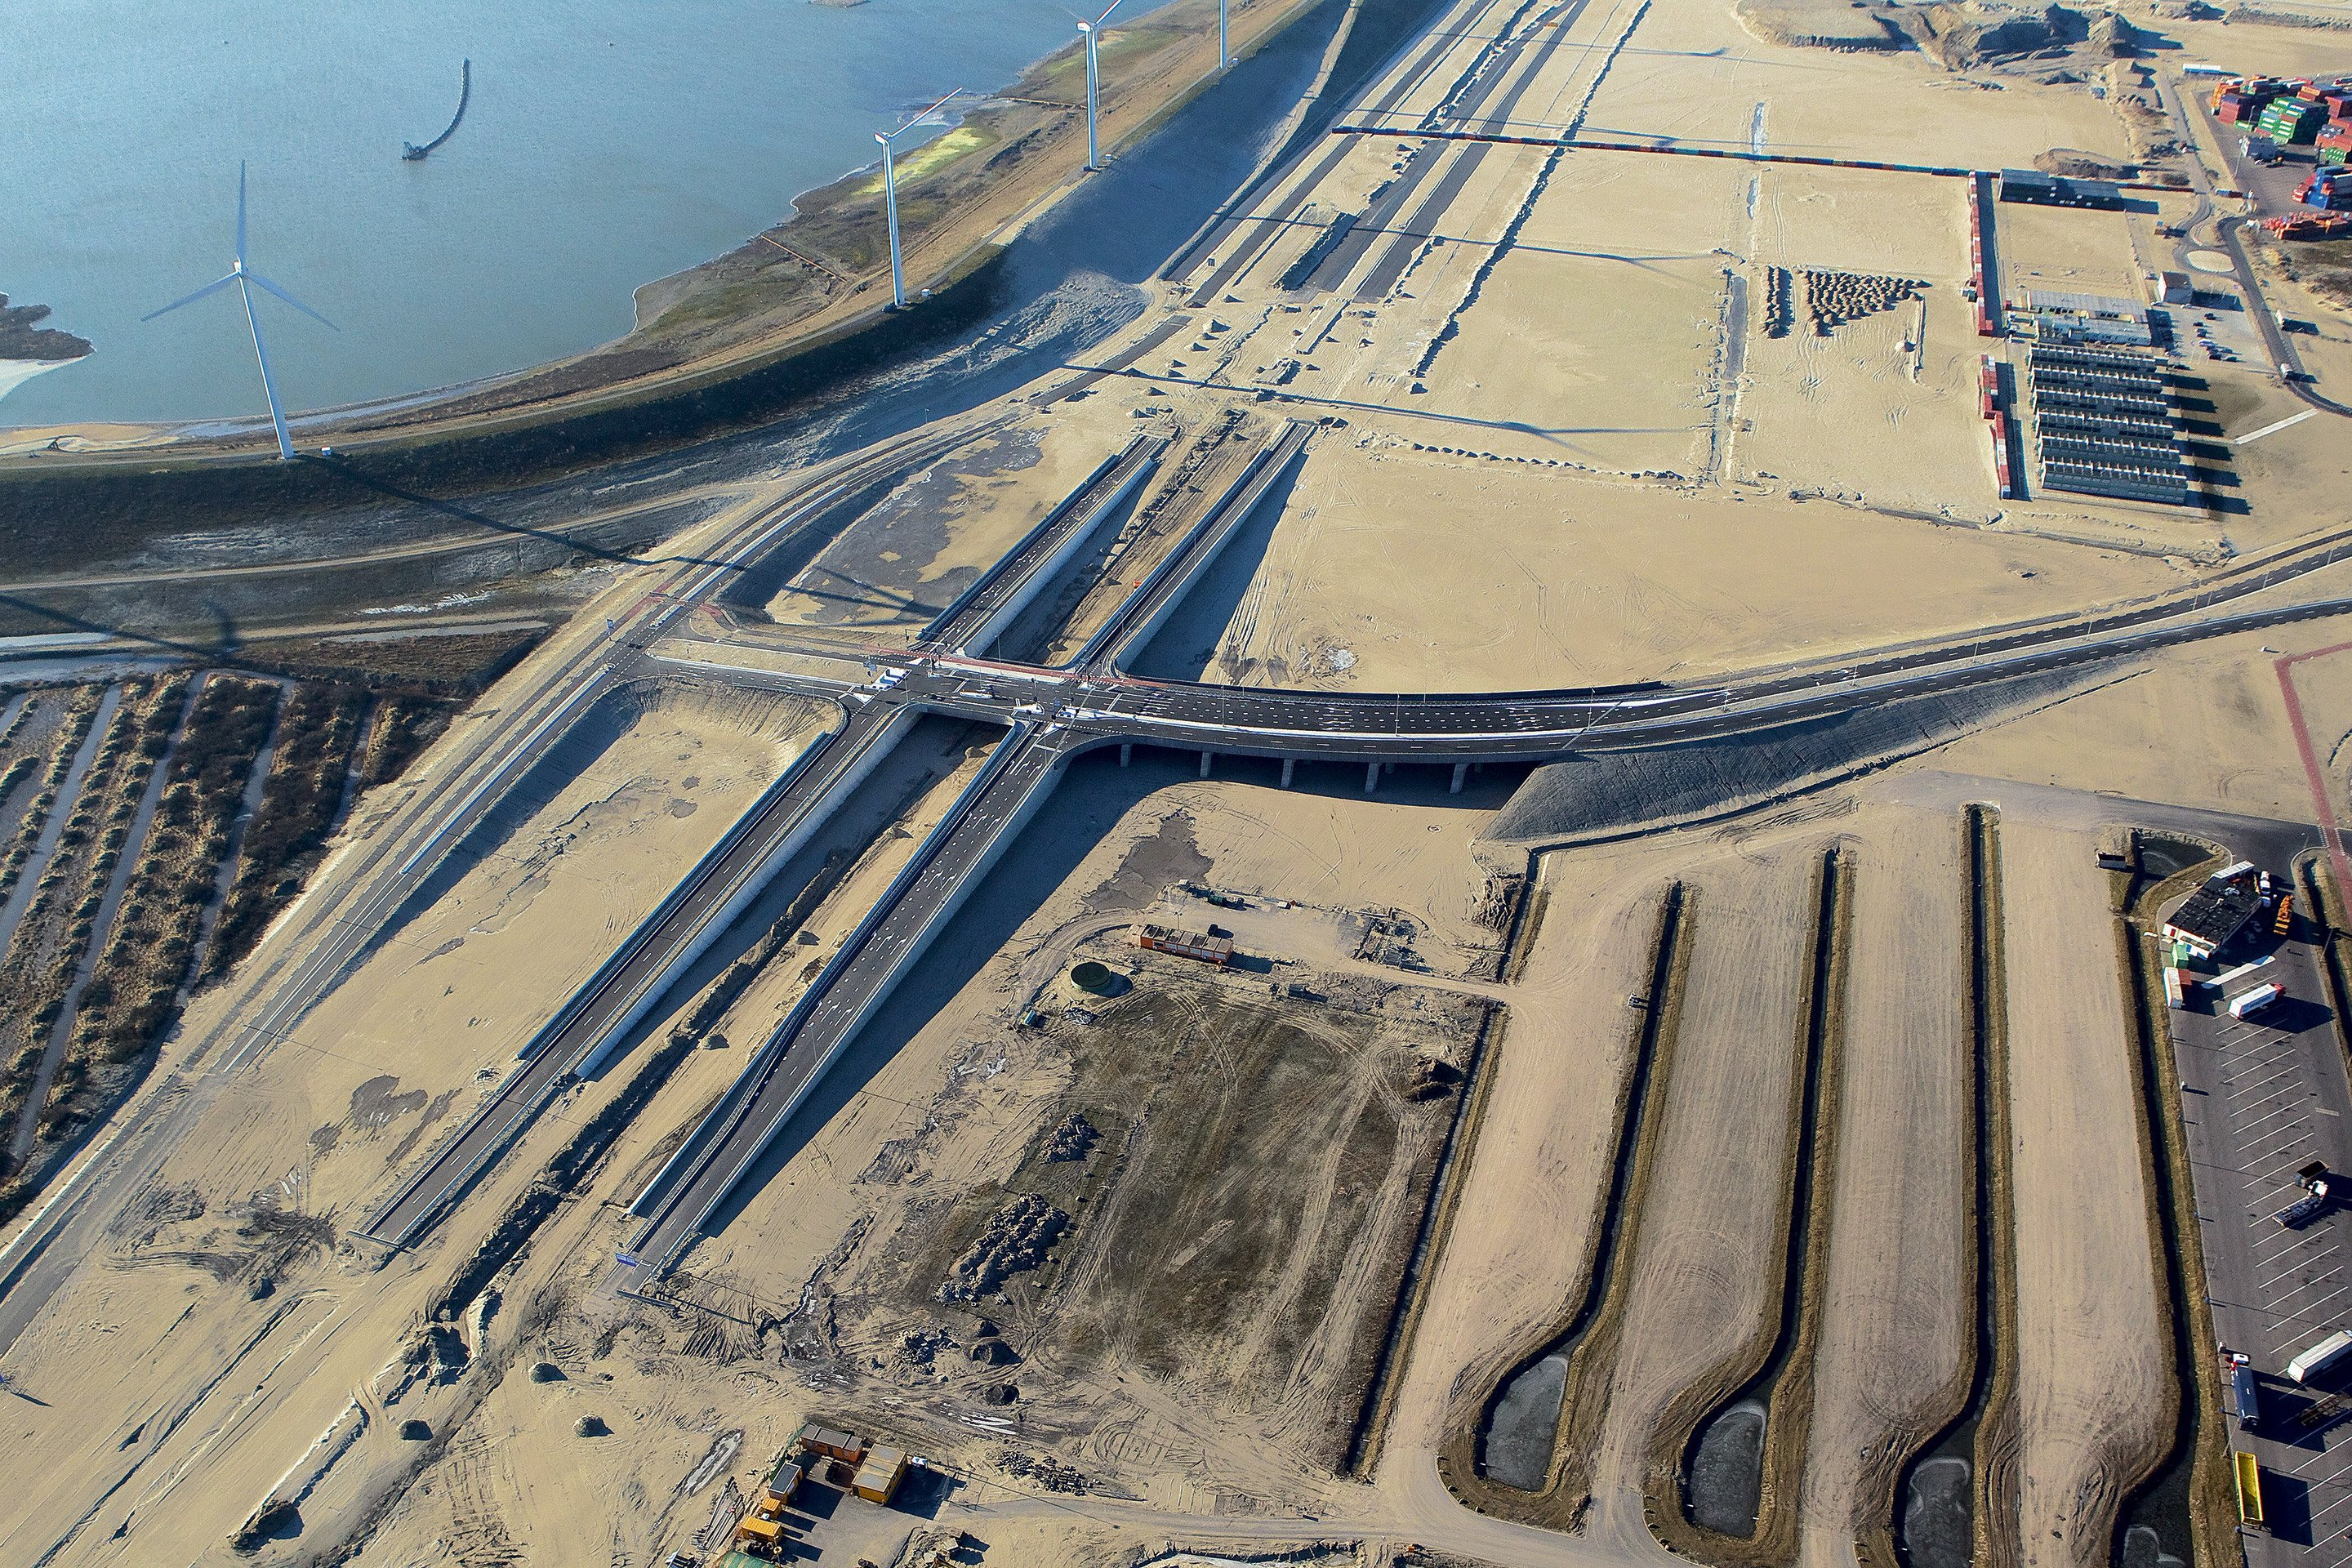 Construction roads and railways